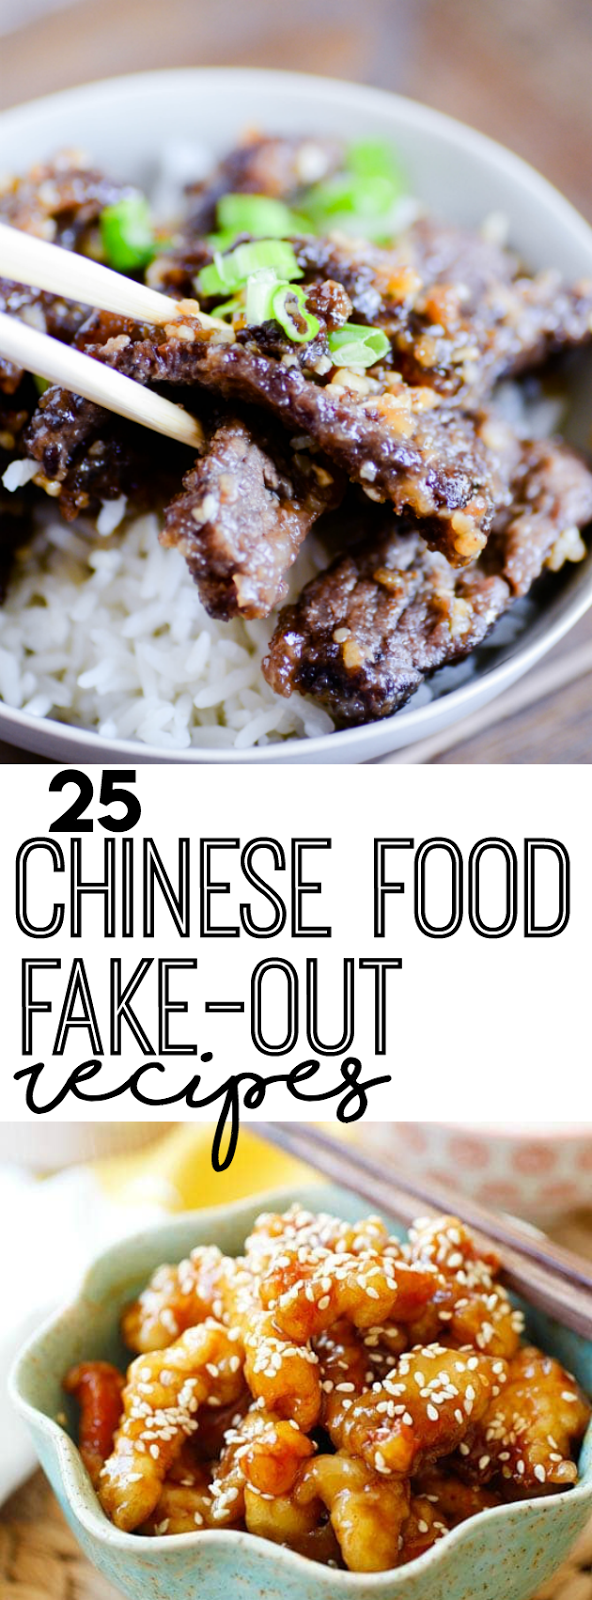 If you love Chinese take-out, these 25 recipes are must-try copycats of all your favorites!